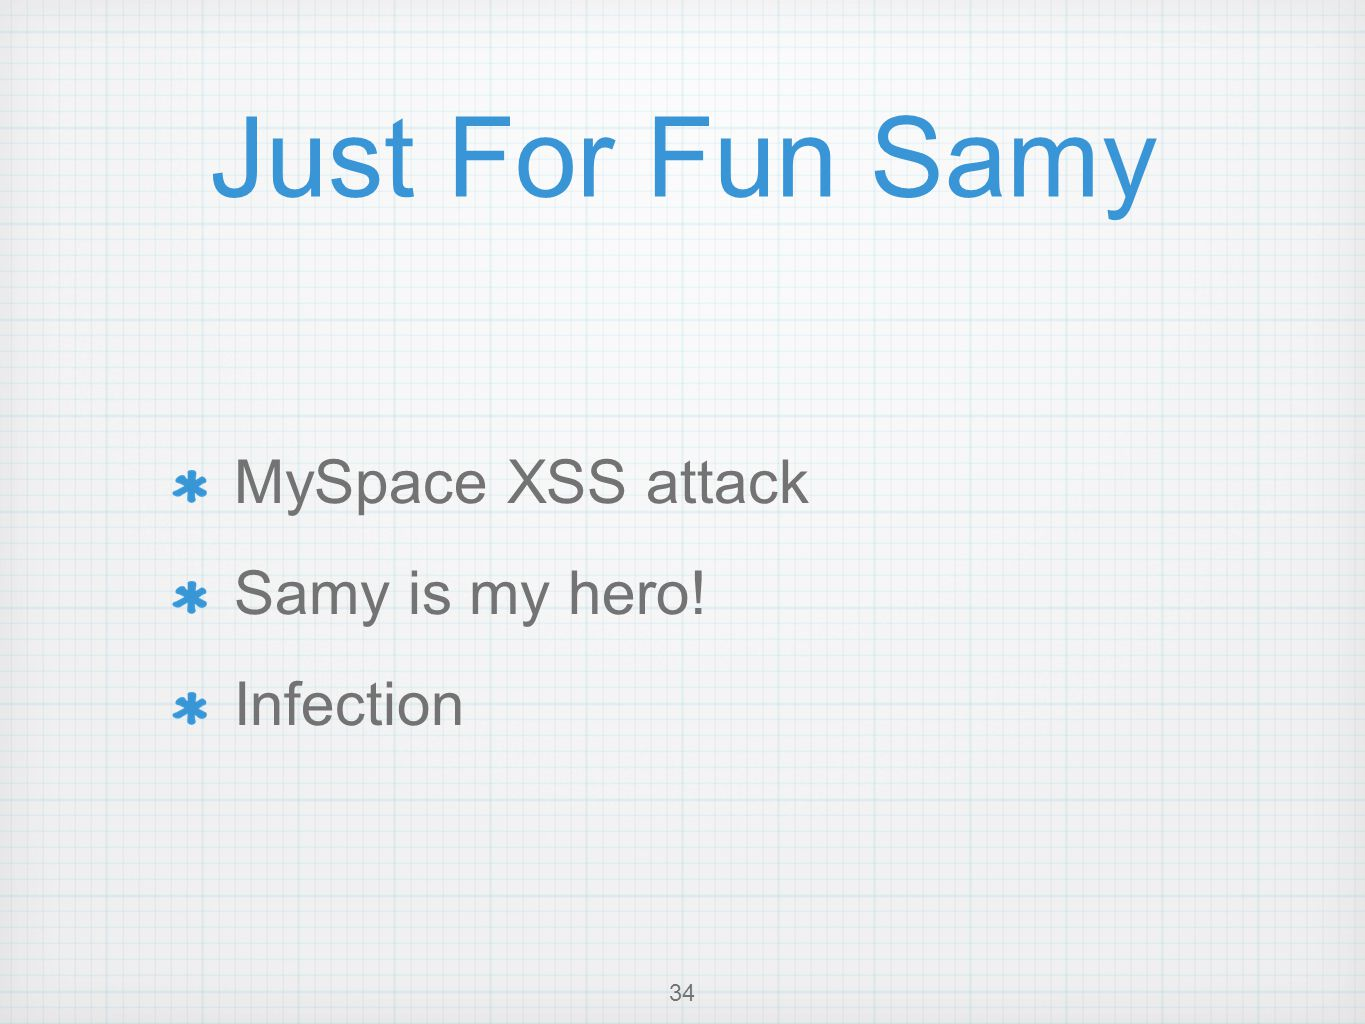 Just For Fun Samy MySpace XSS attack Samy is my hero! Infection 34